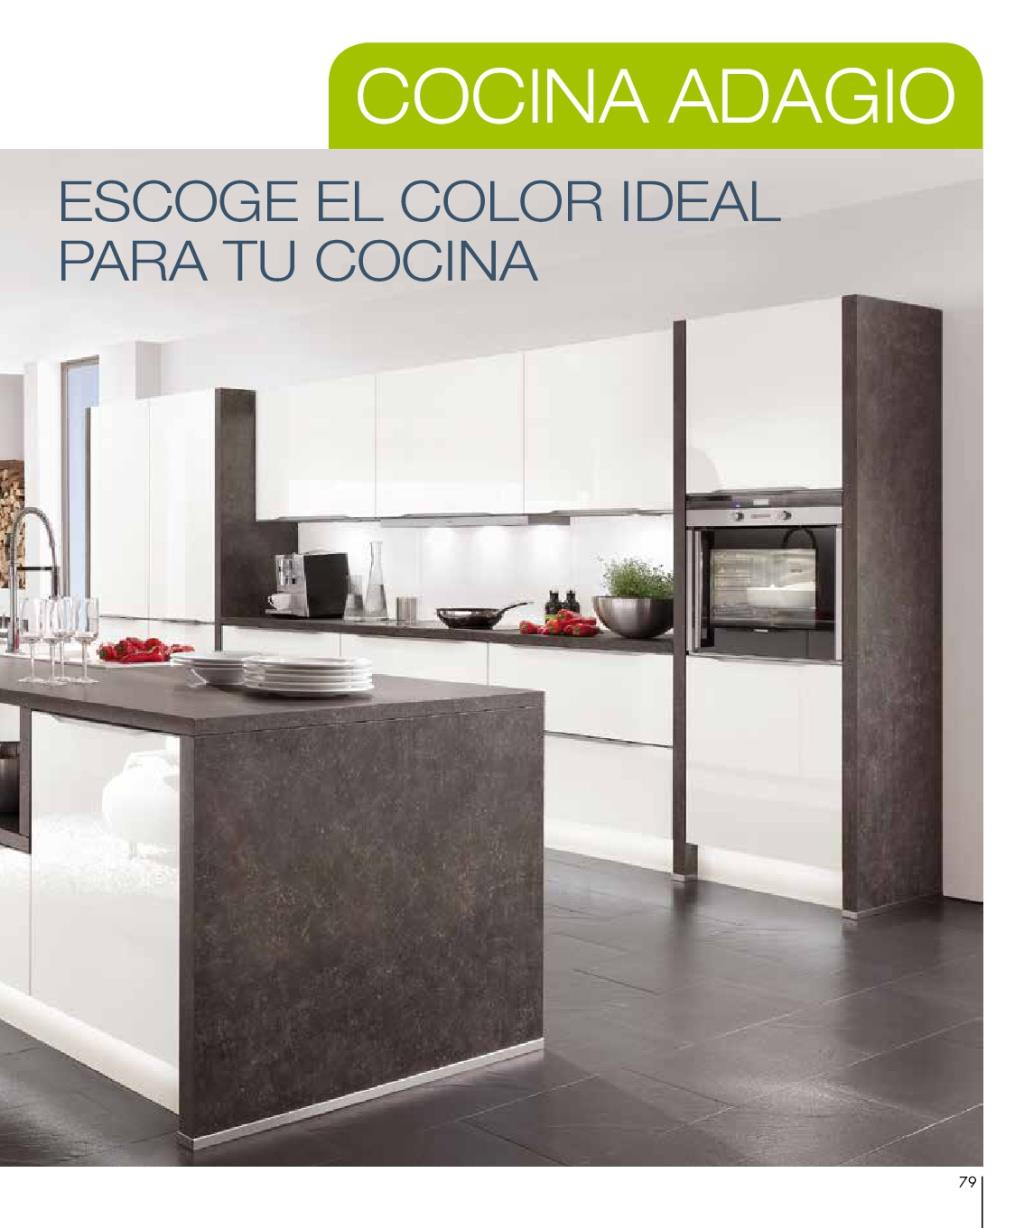 Conforama cocinas 201679 for Catalogos de cocinas 2016